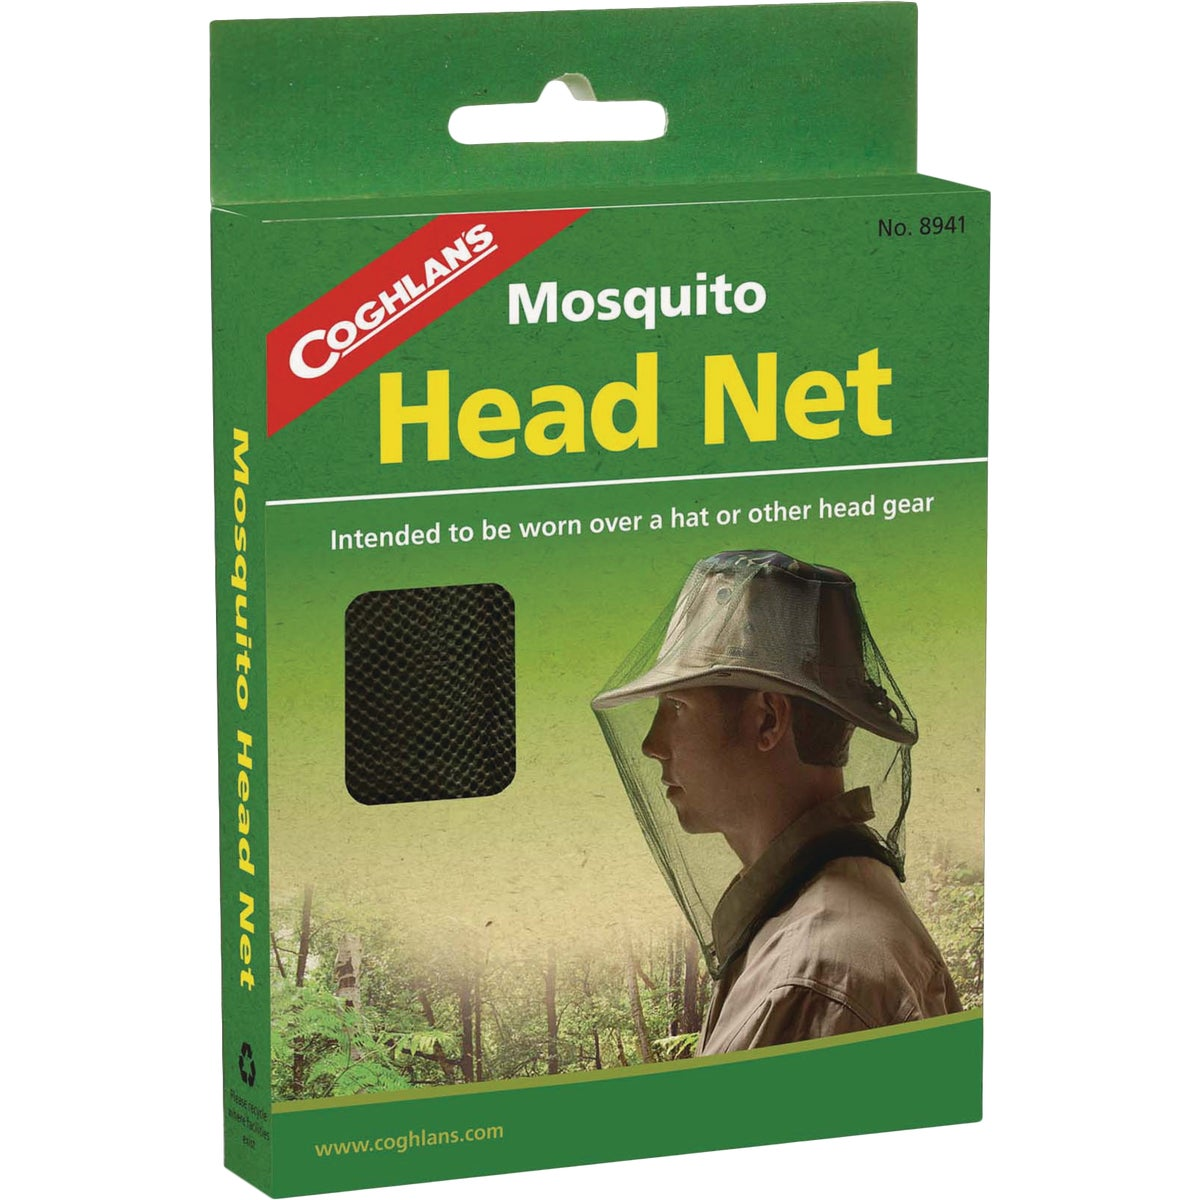 INSECT HEAD NET - 2000003267 by Coleman